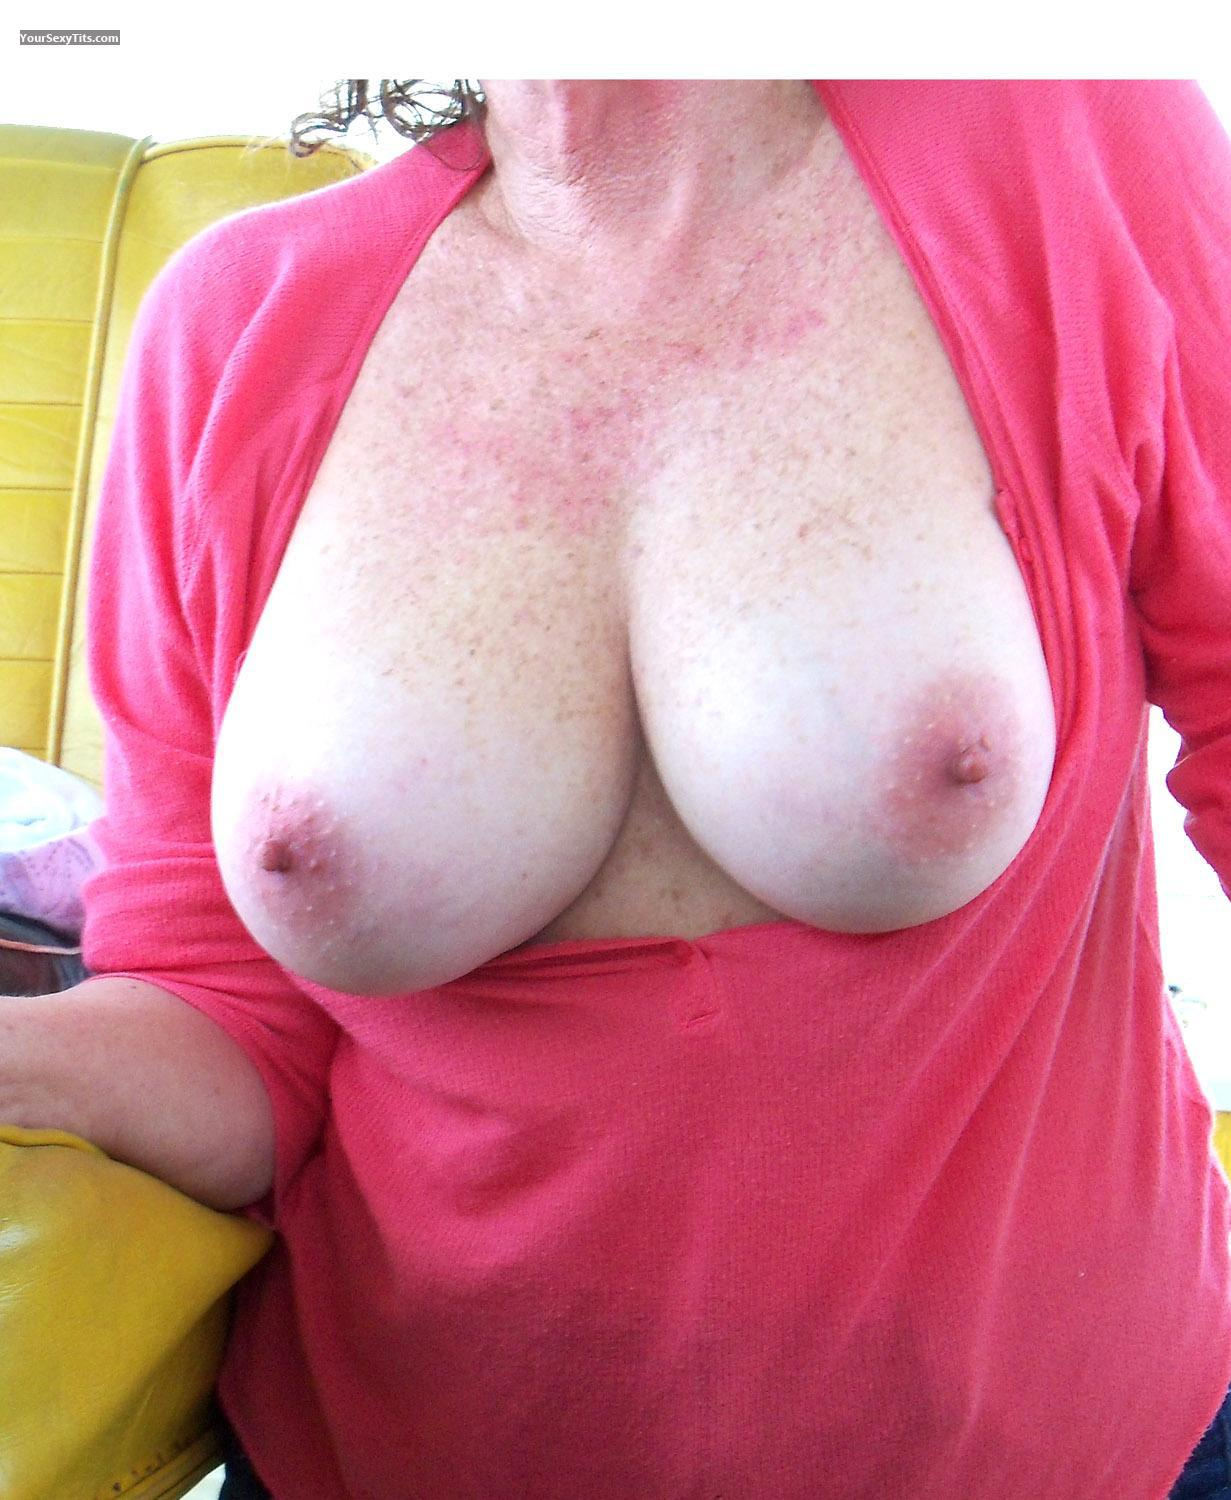 Tit Flash: Big Tits - JJ from United States